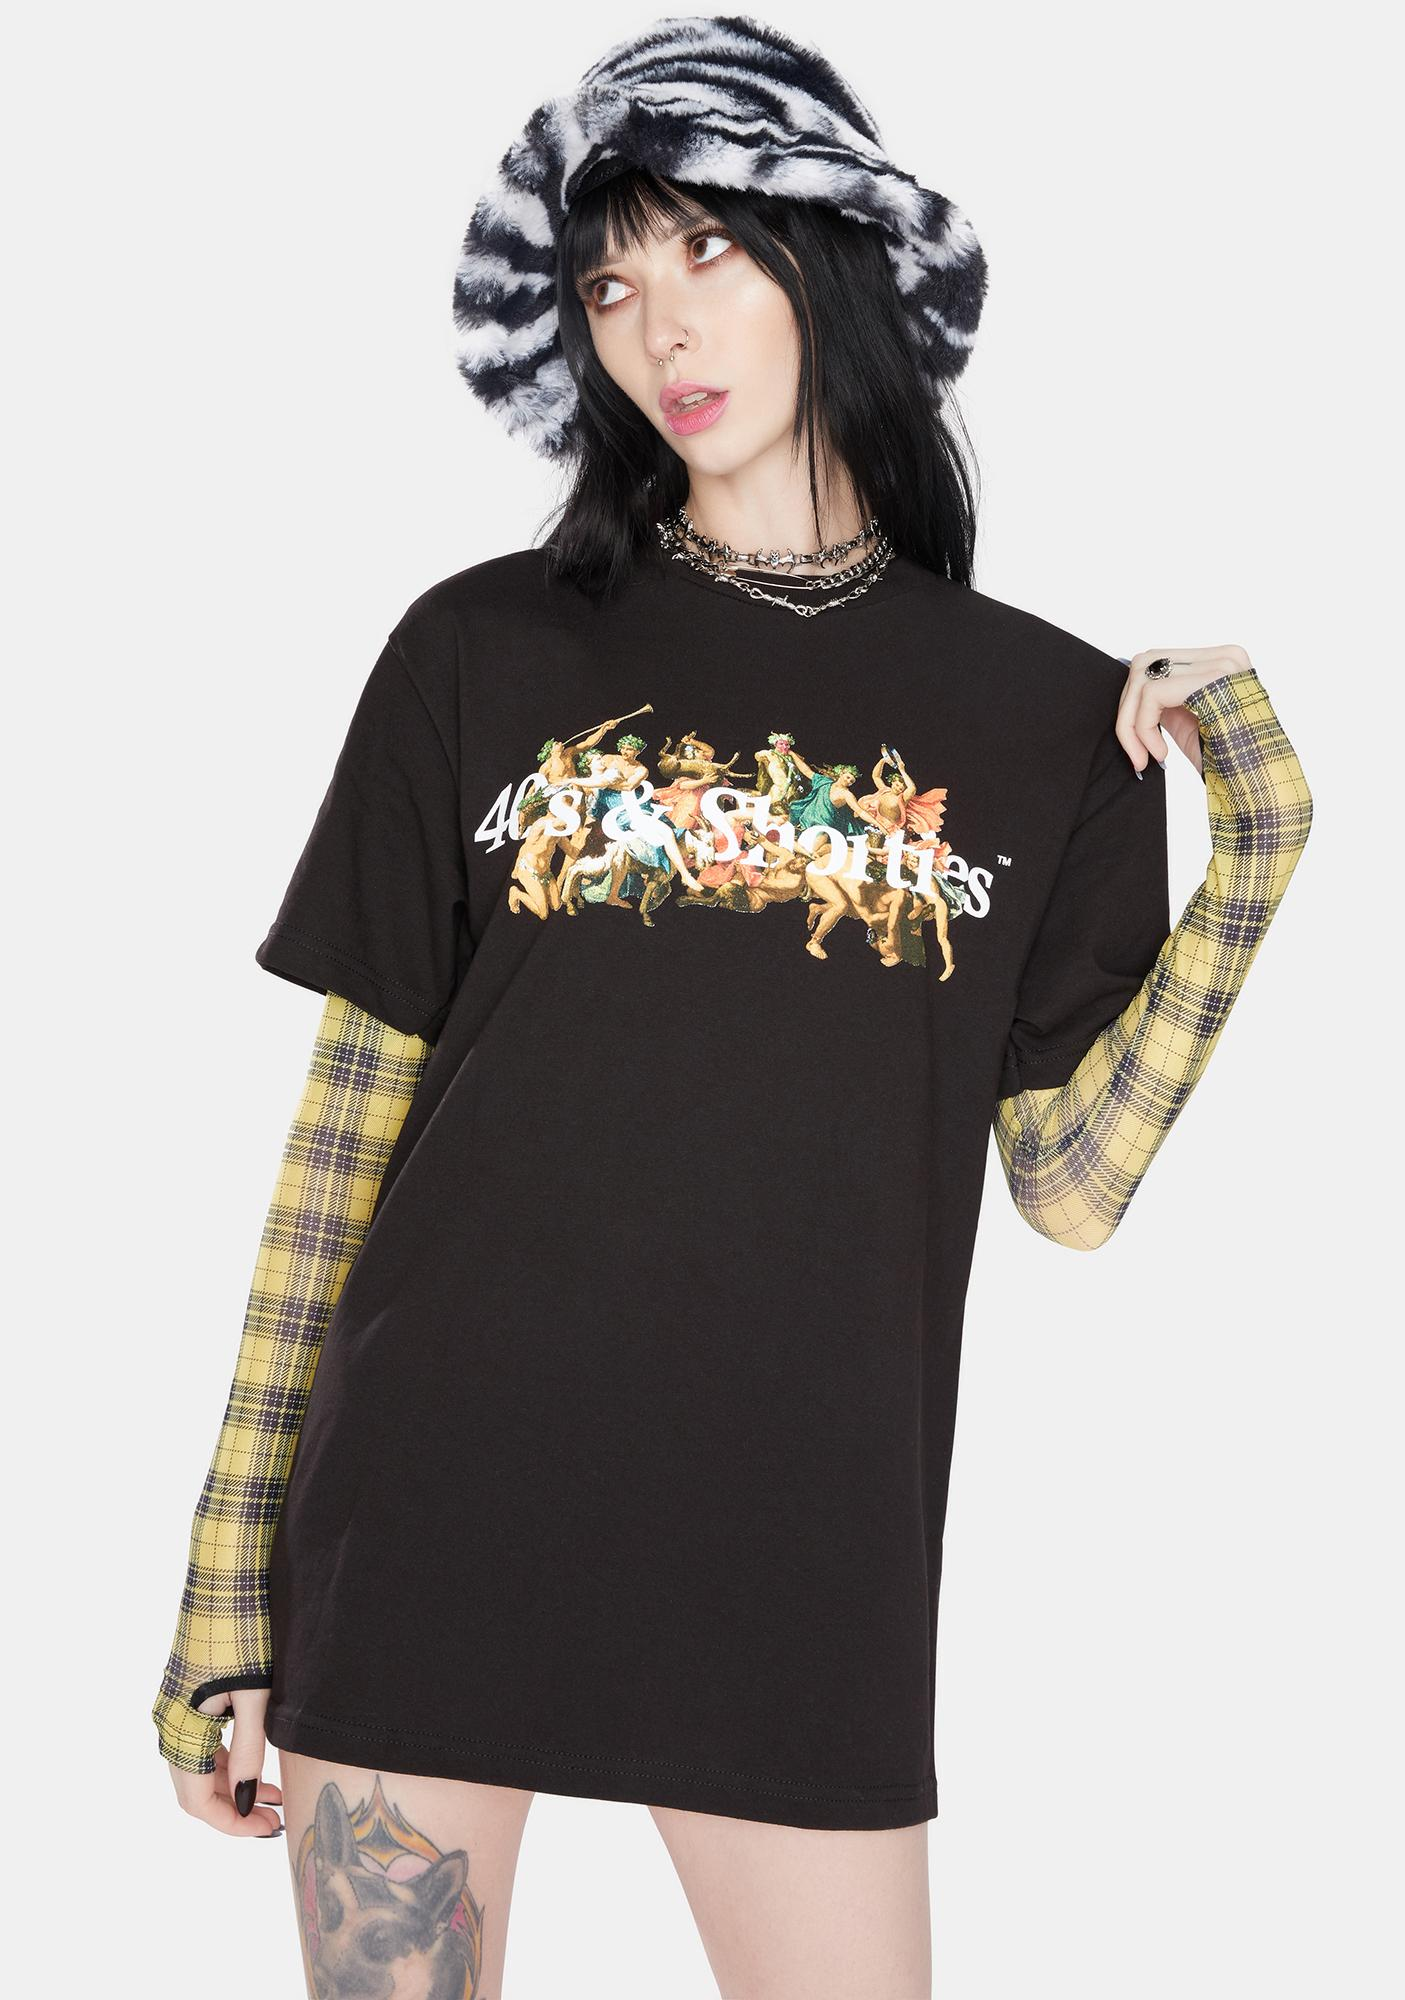 40s & Shorties Black Temptation Graphic Tee